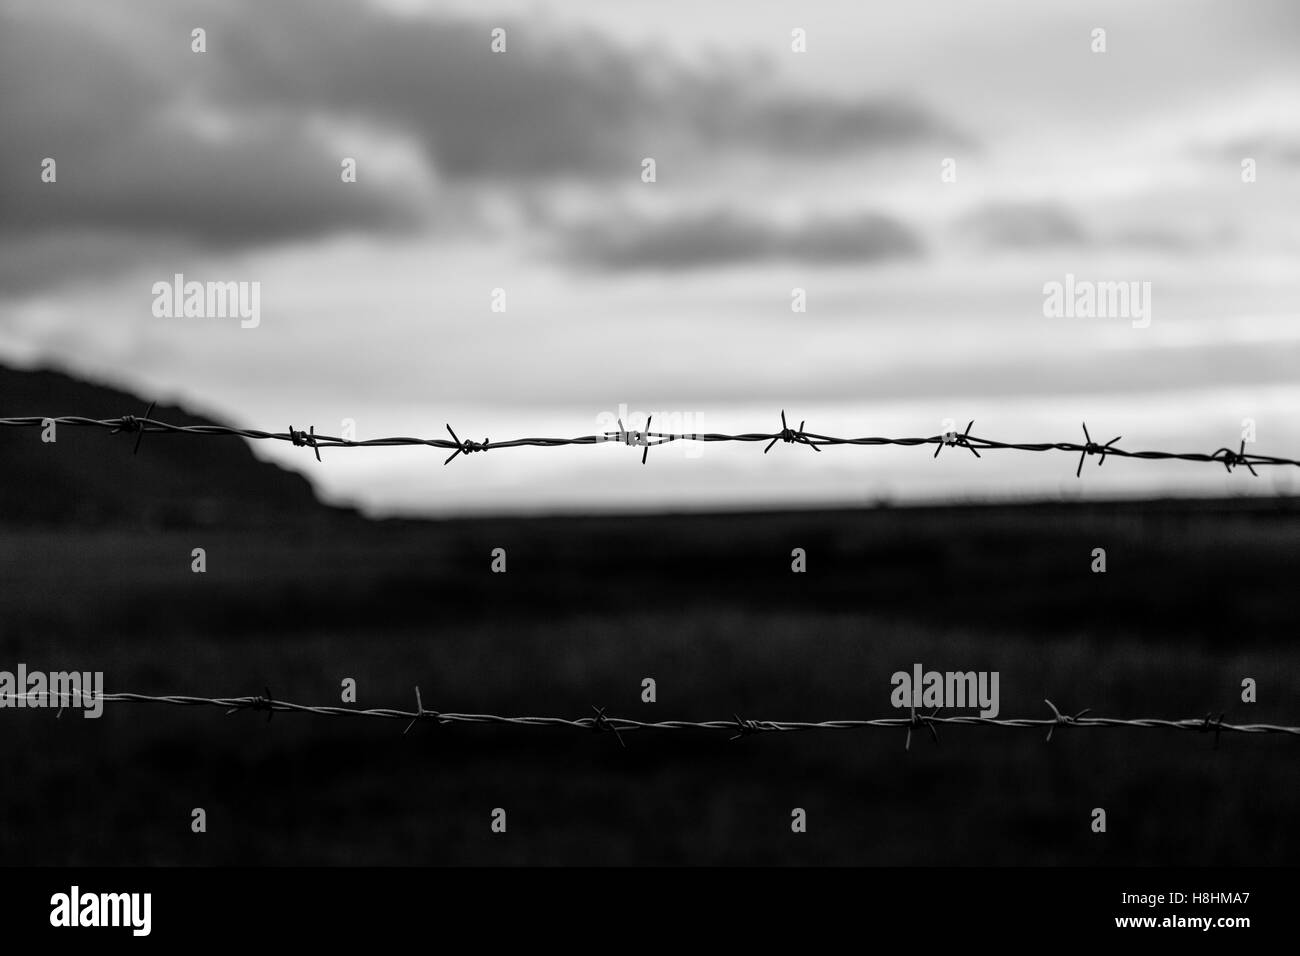 Barbed wire fence in Iceland - Stock Image